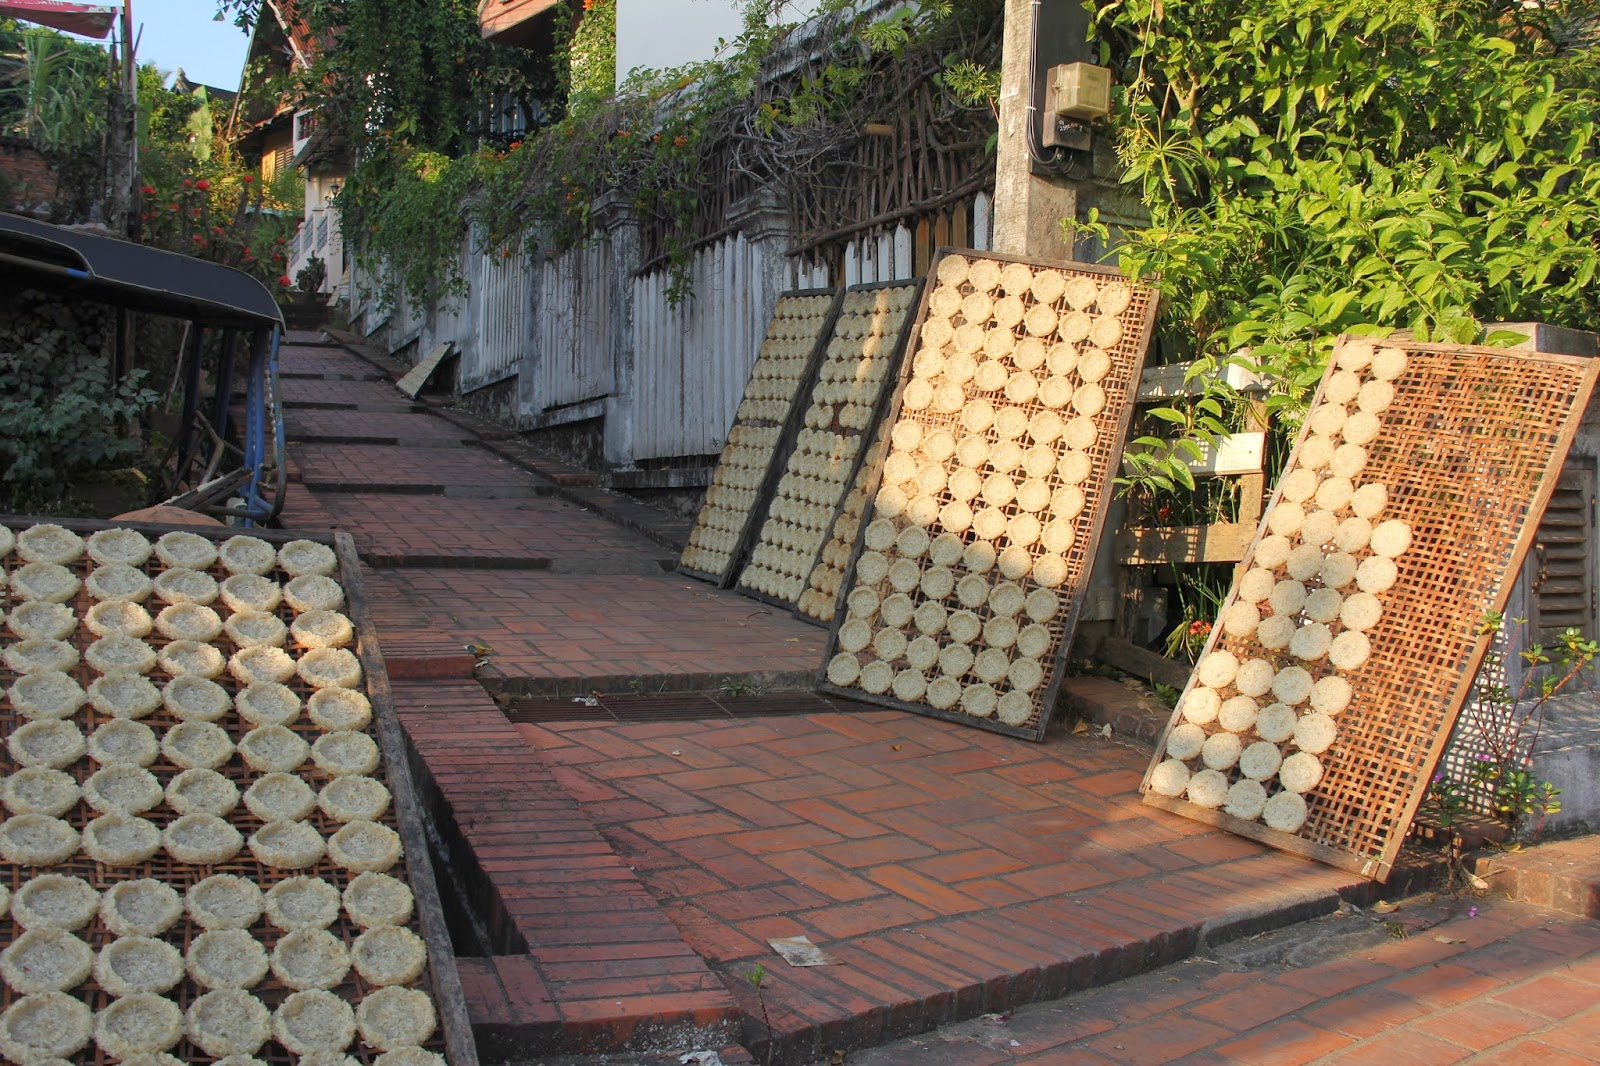 Sticky rice cakes drying on wicker mats in the sun in Luang Prabang.  A traditional Lao food.